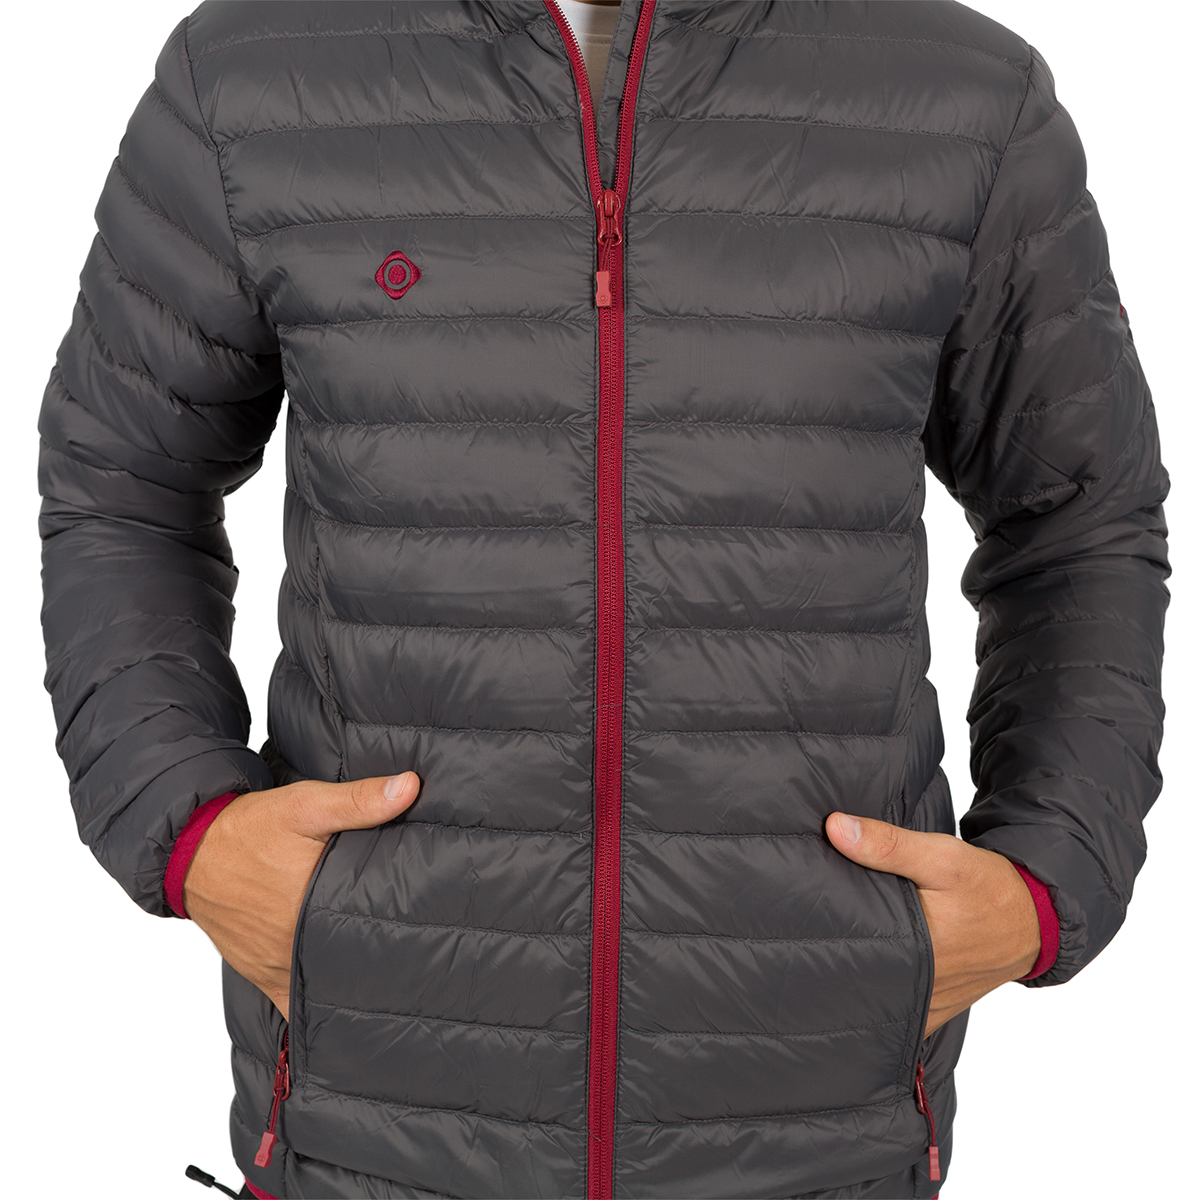 MAN'S KIEL DOWN JACKET GREY